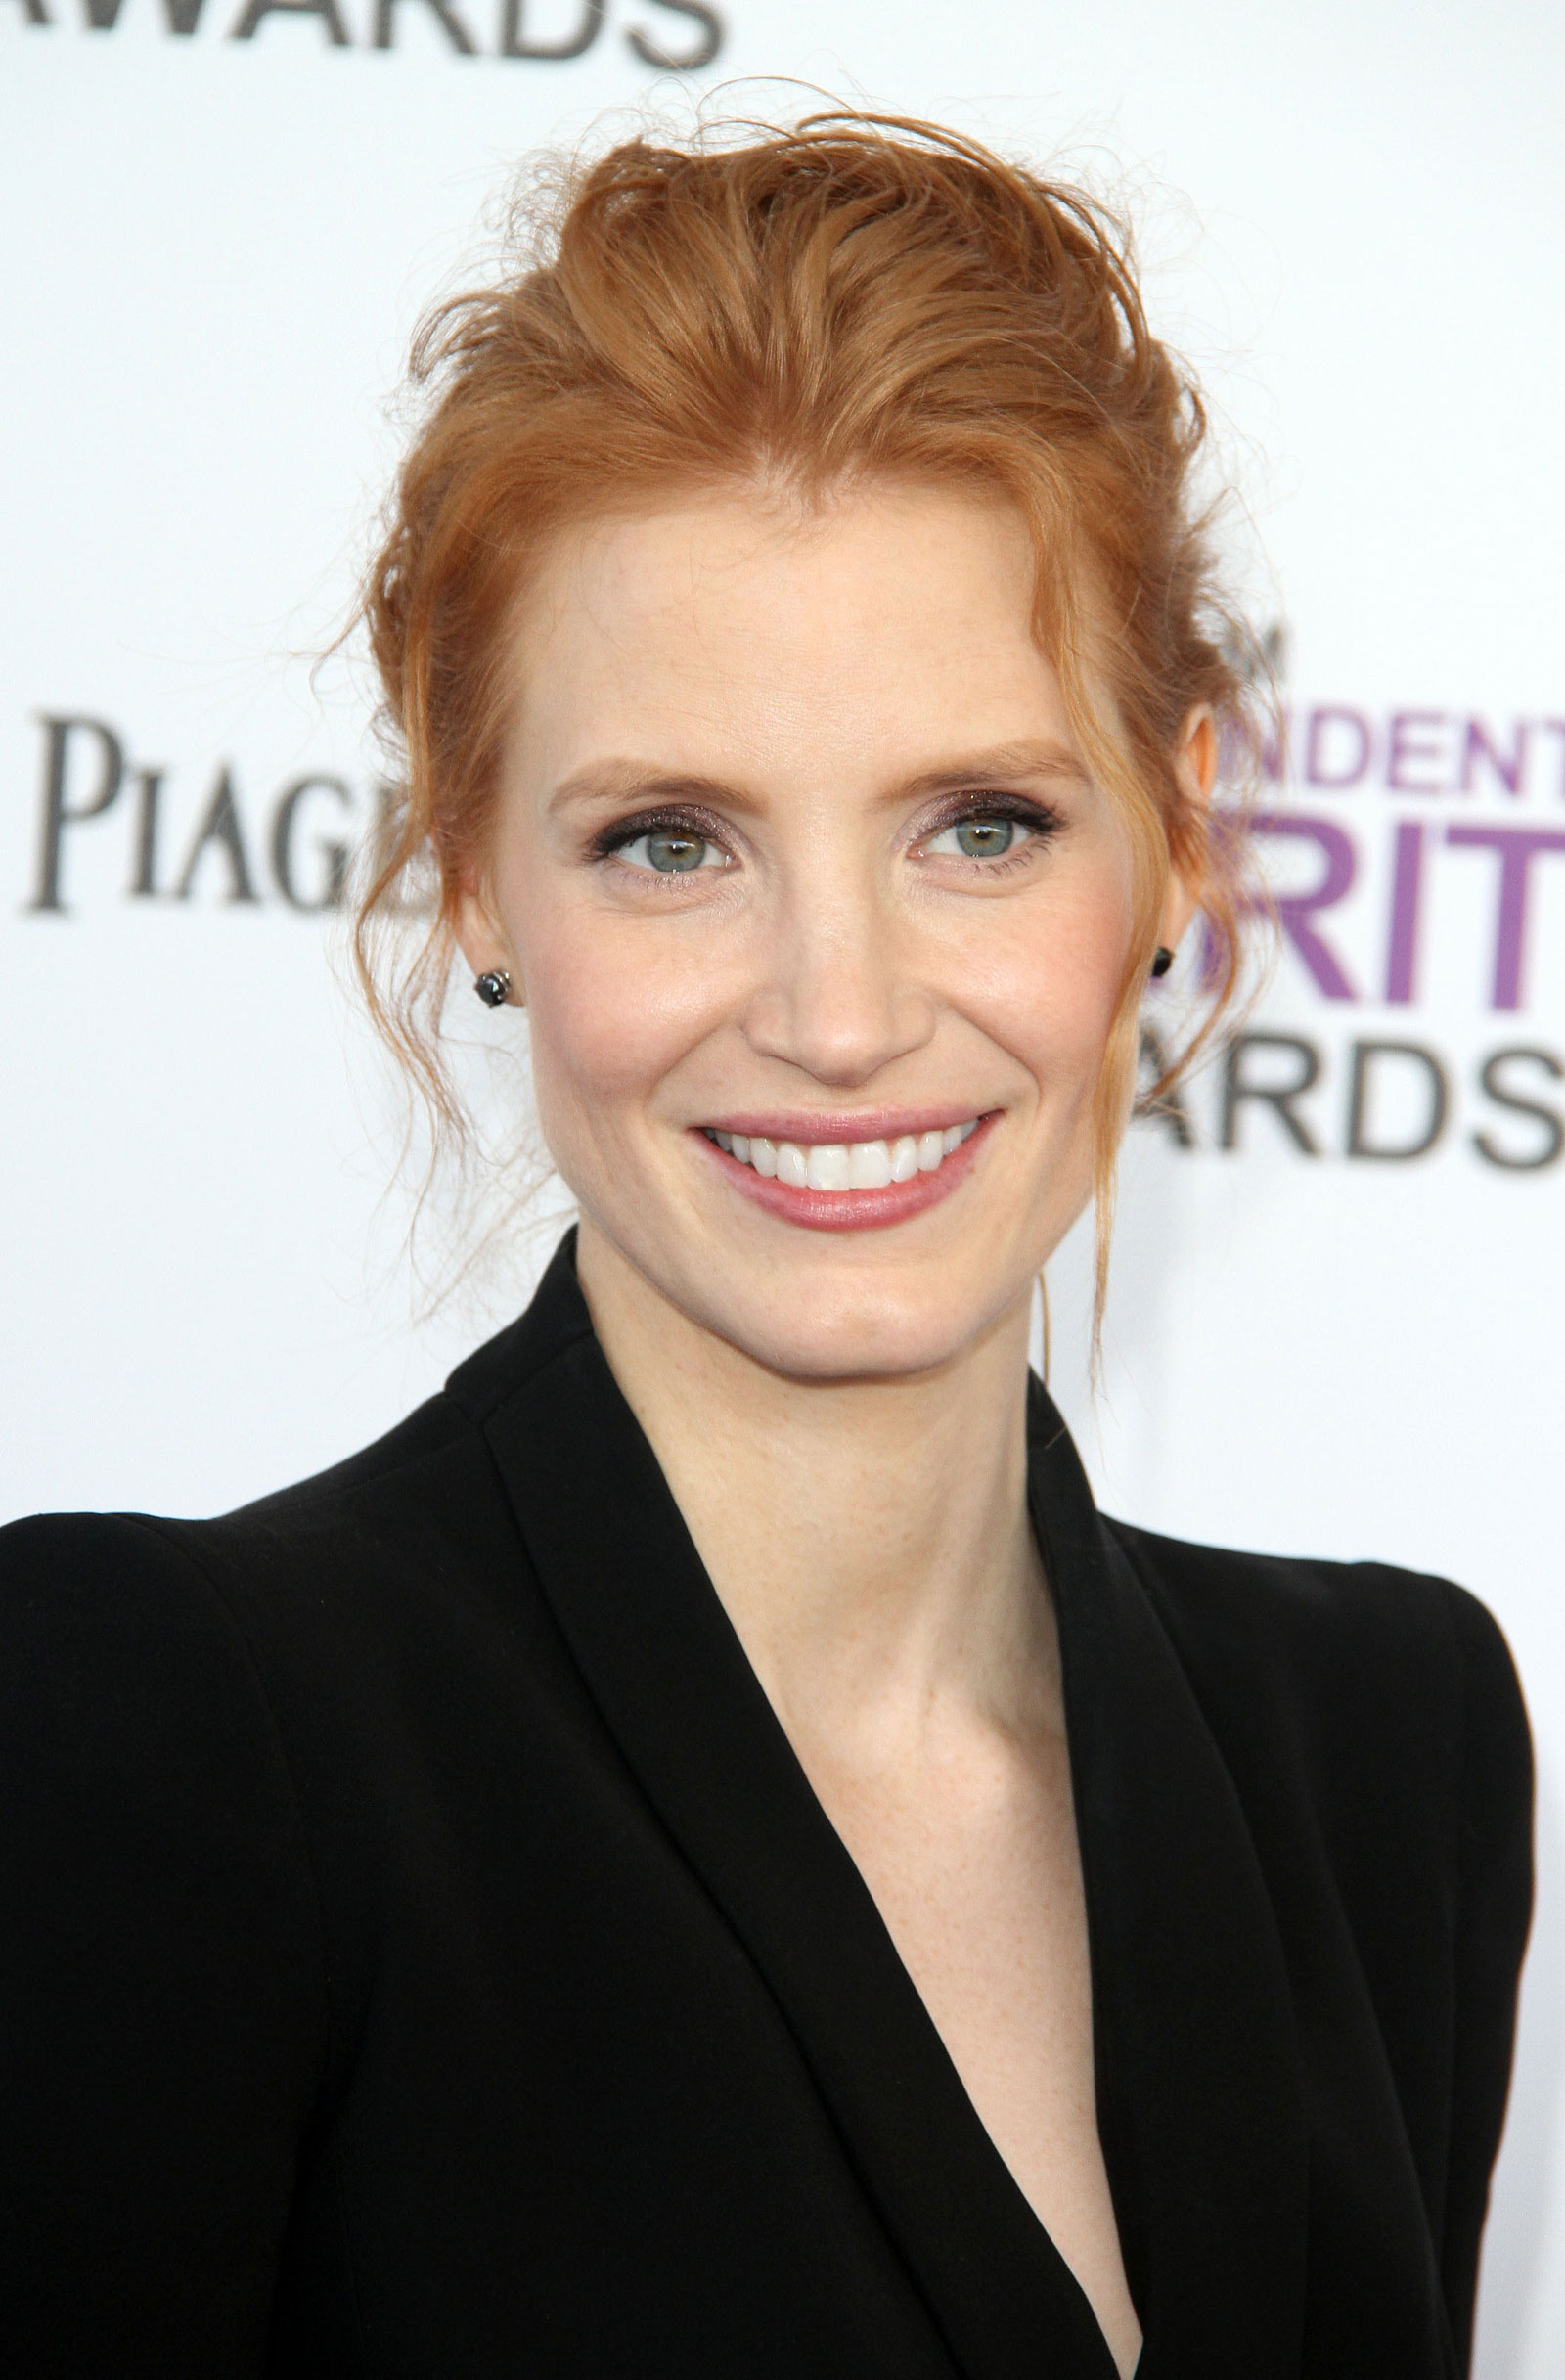 Jessica Chastain at the 2012 Film Independent Spirit Awards in Santa ... Jessica Chastain